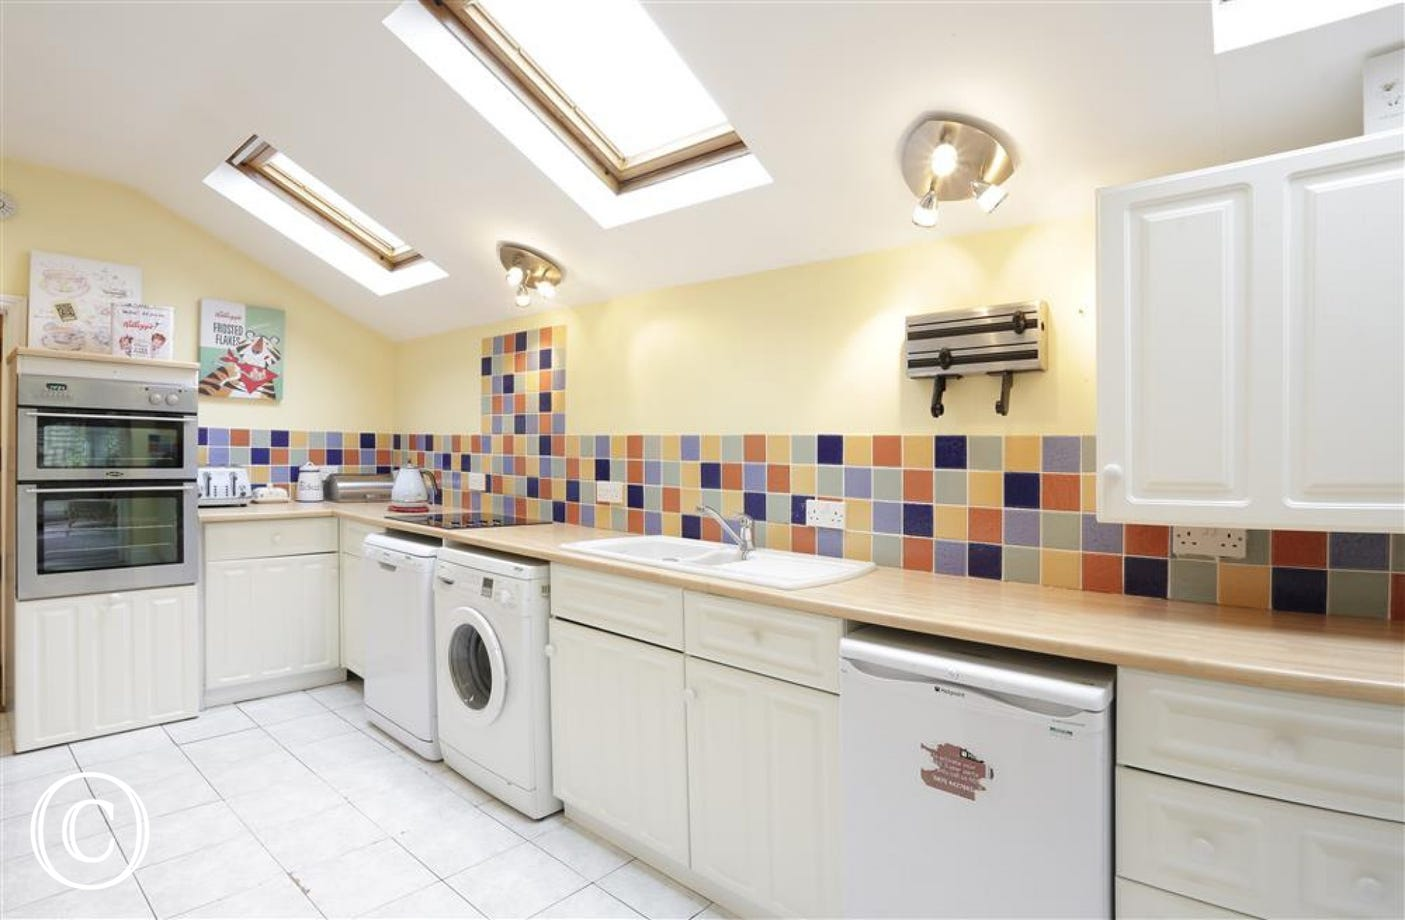 This kitchen with colourful wall tiles houses all the appliances one needs for a self-catering stay.